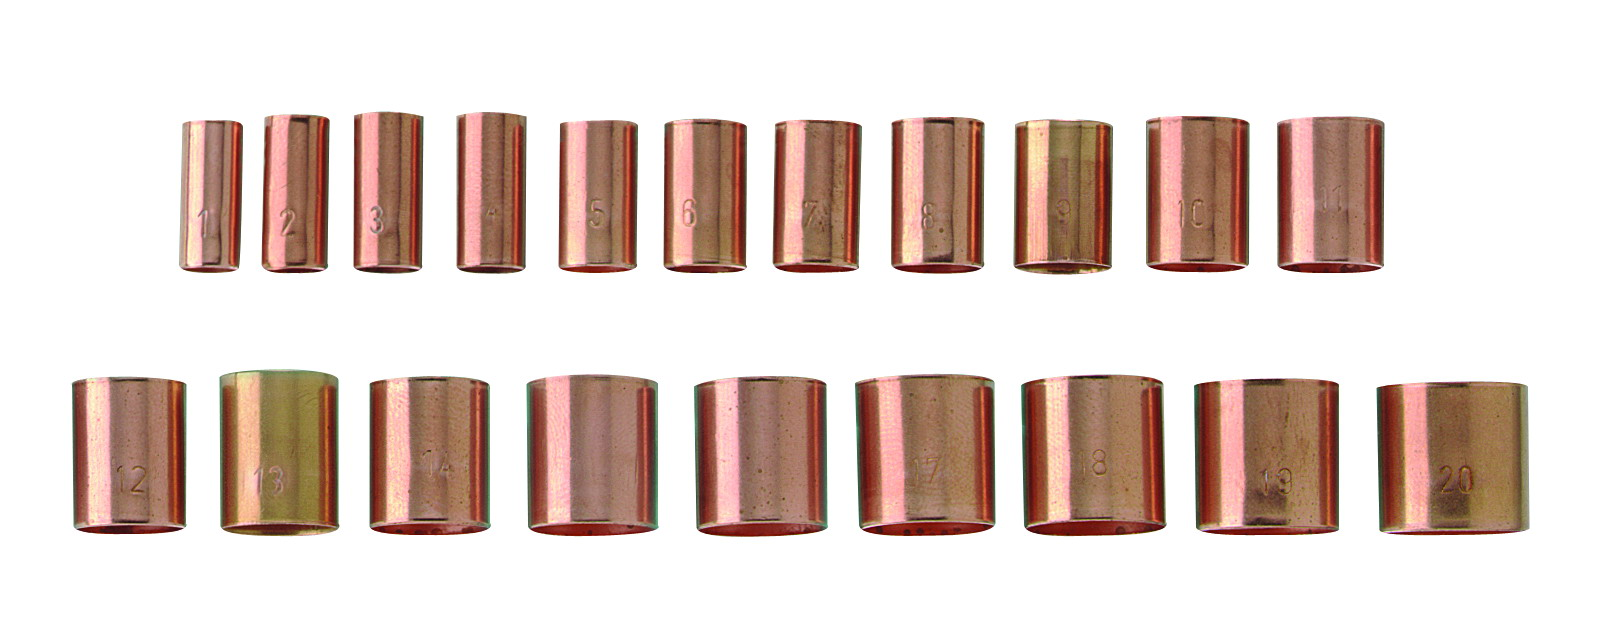 copper-band-hard-1-20-assortment-box-537-52430-miltex.jpg